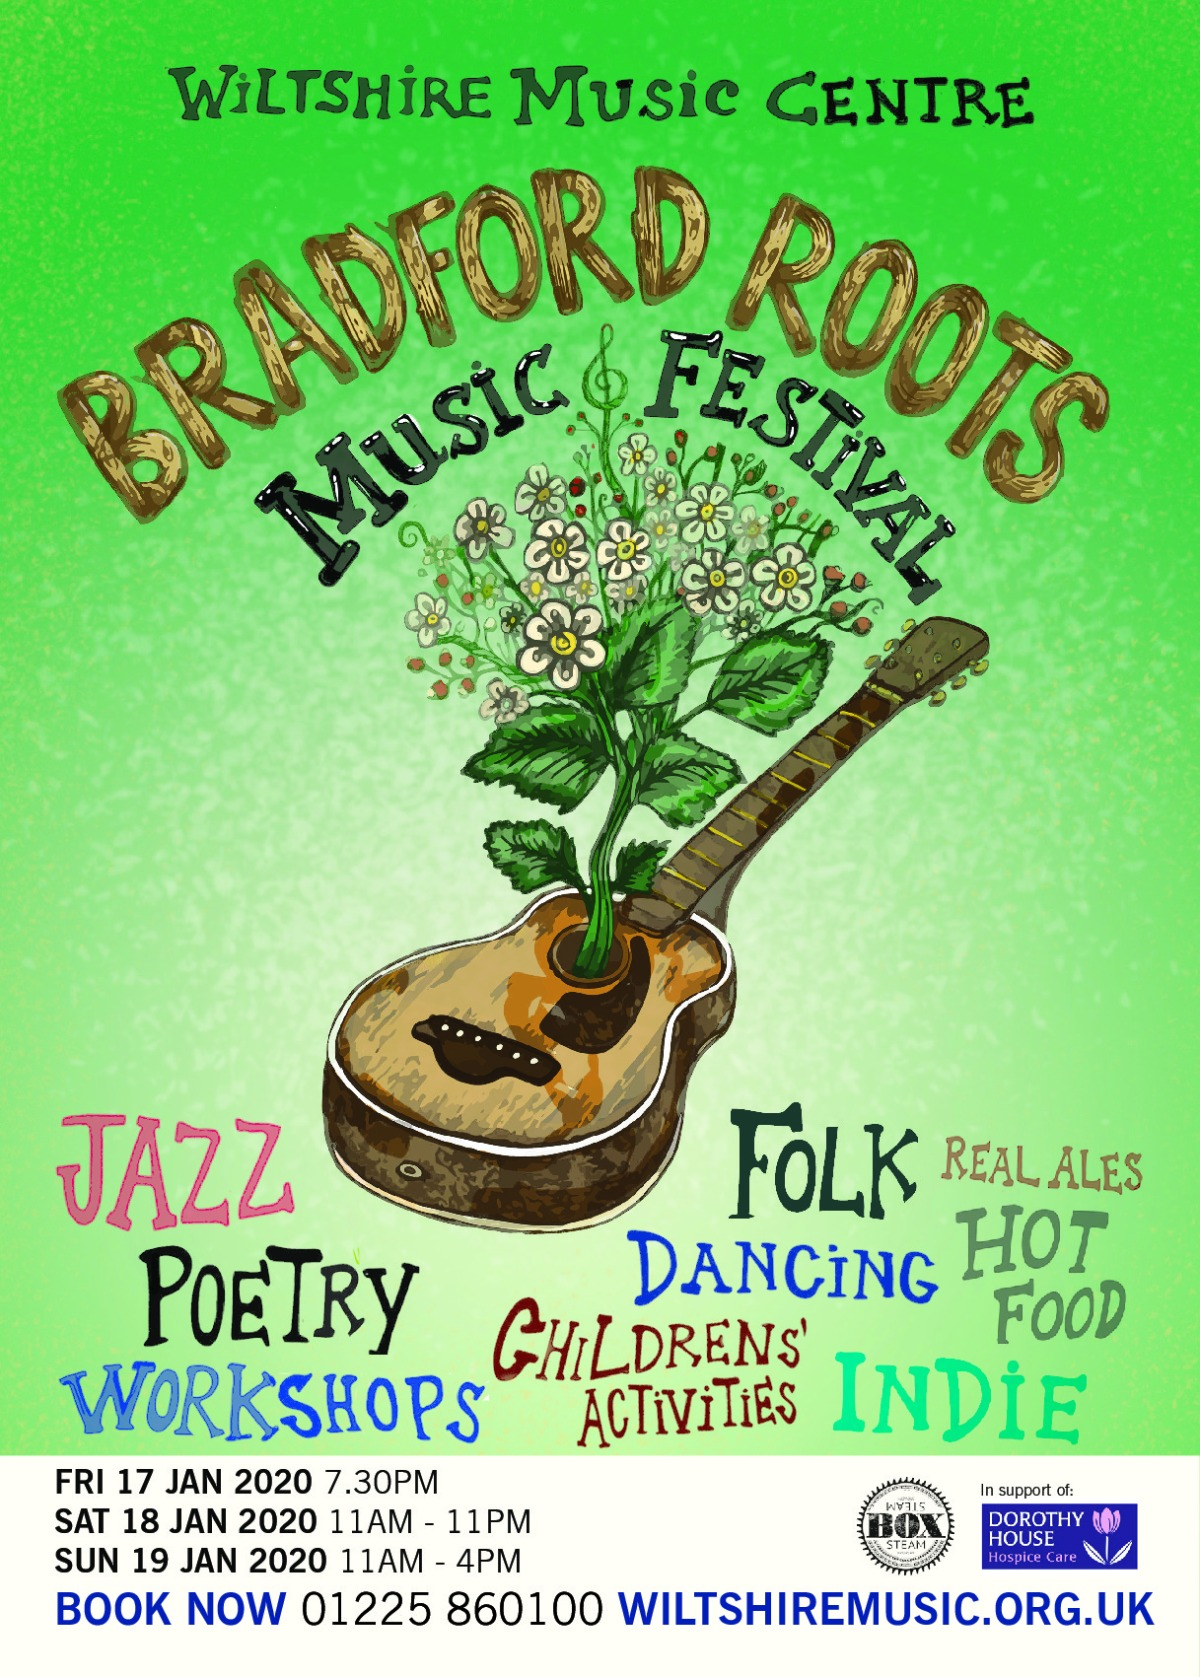 PREVIEW: Bradford Roots Music Festival 17th – 19th January 2020 @ Wiltshire Music Centre, Bradford